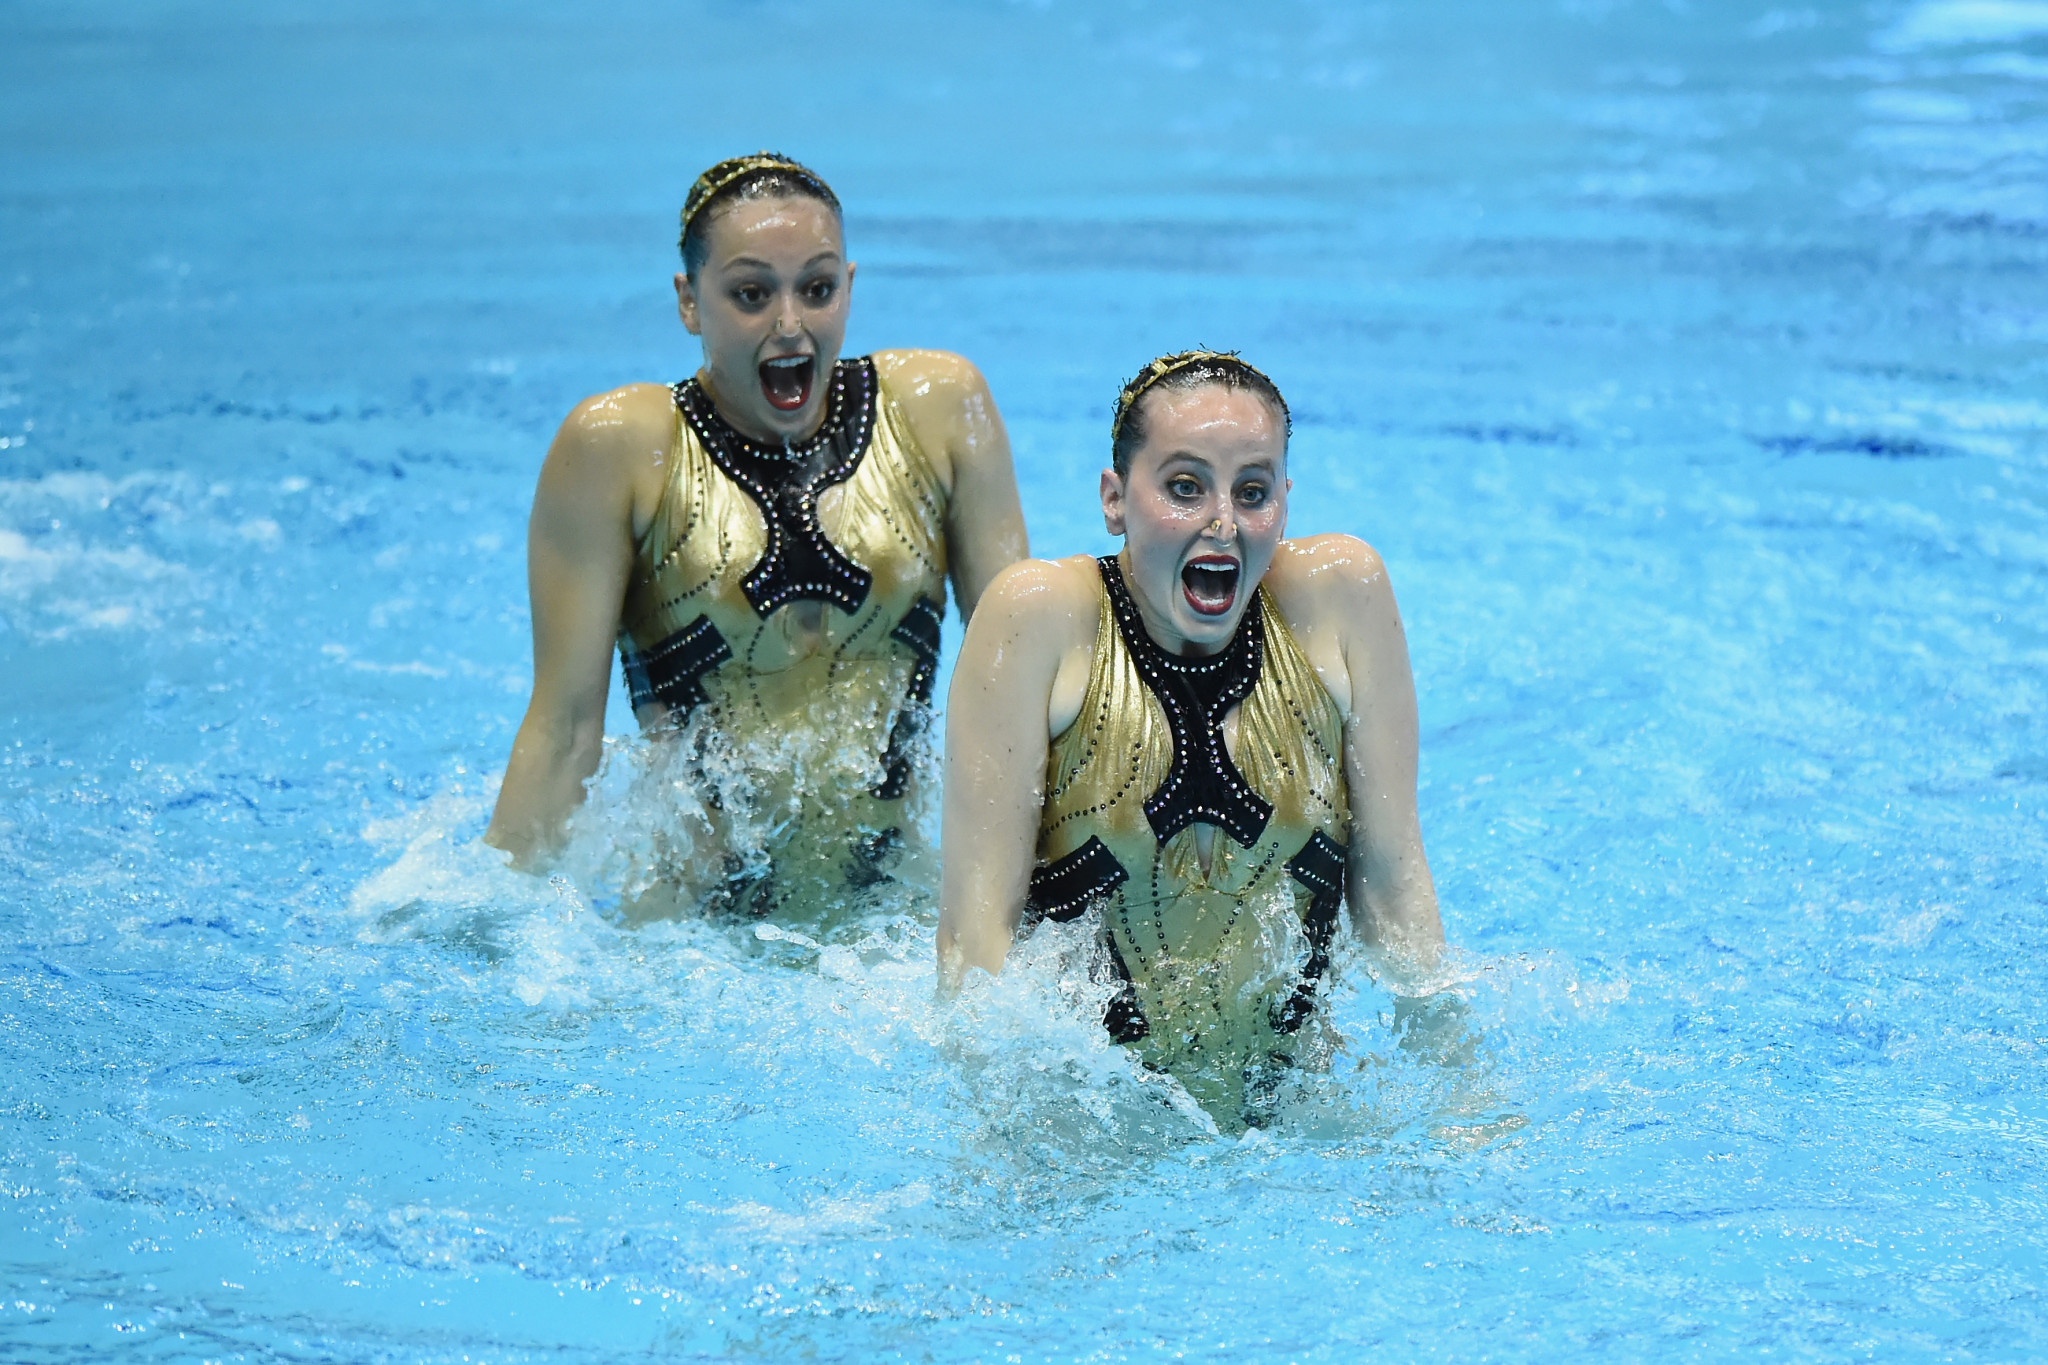 Spain targeting home success at Artistic Swimming World Series leg in Madrid